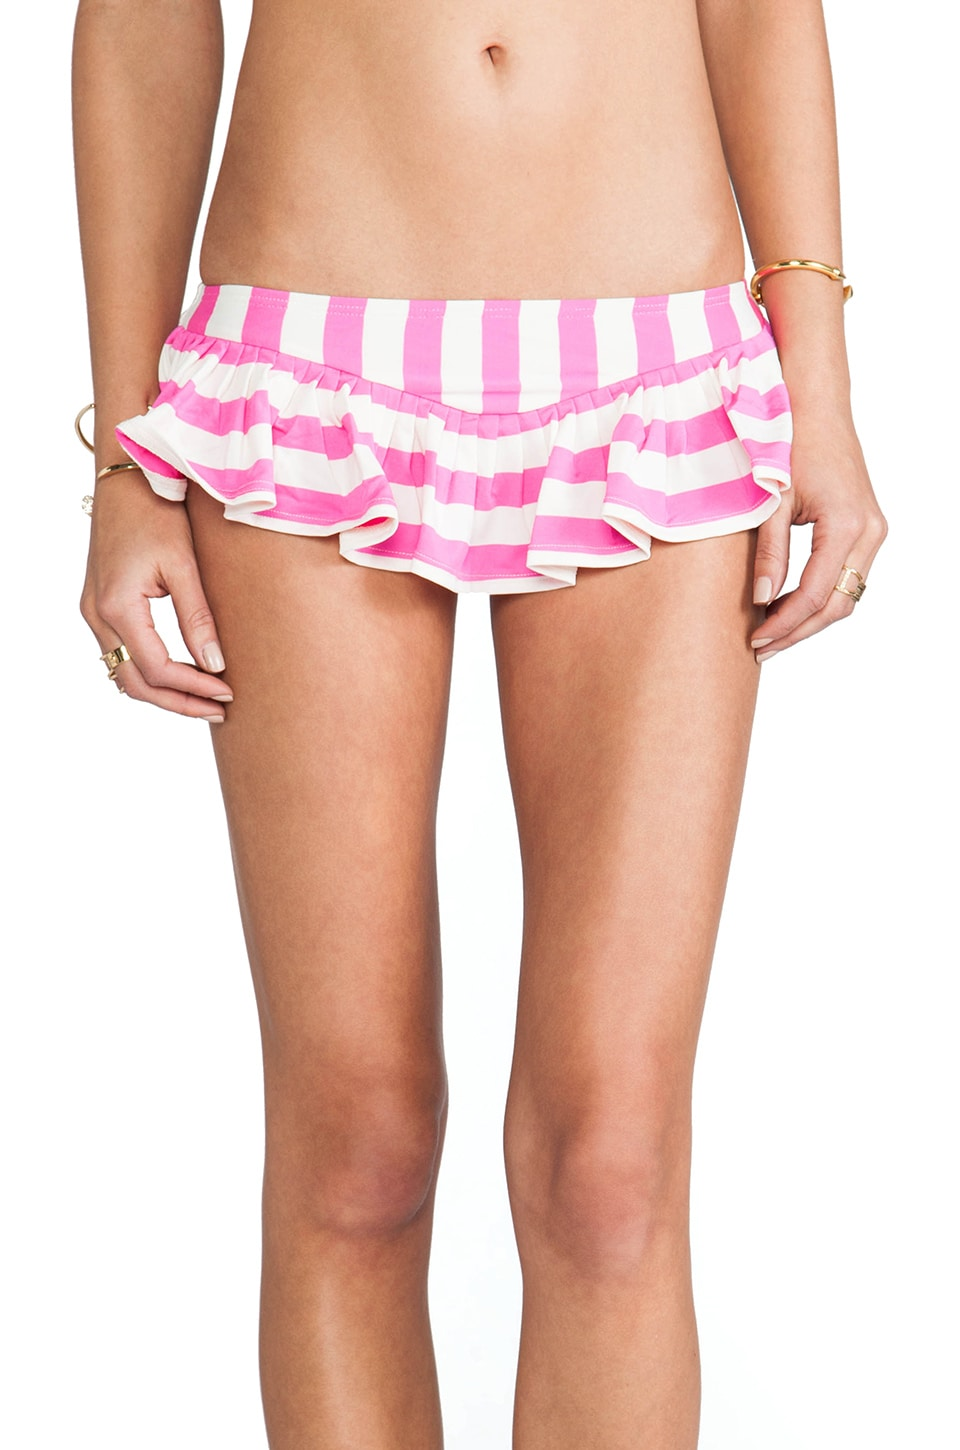 Juicy Couture Skirted Bottom in Beauty